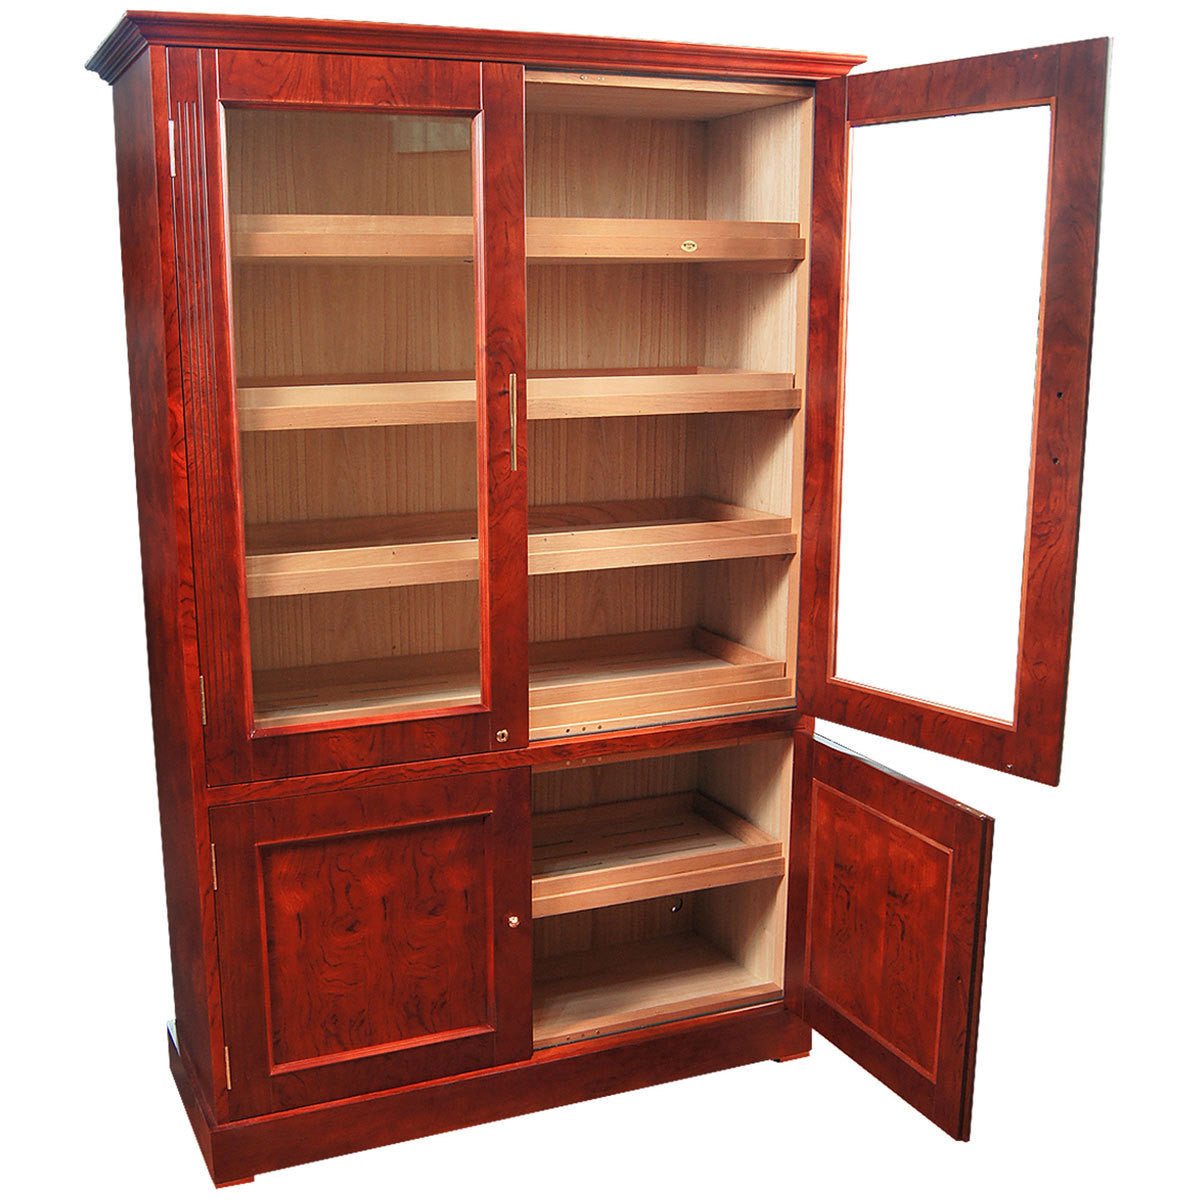 Vitrina Doble Cabinet Humidor for 6000 cigars - Humidors Wholesaler